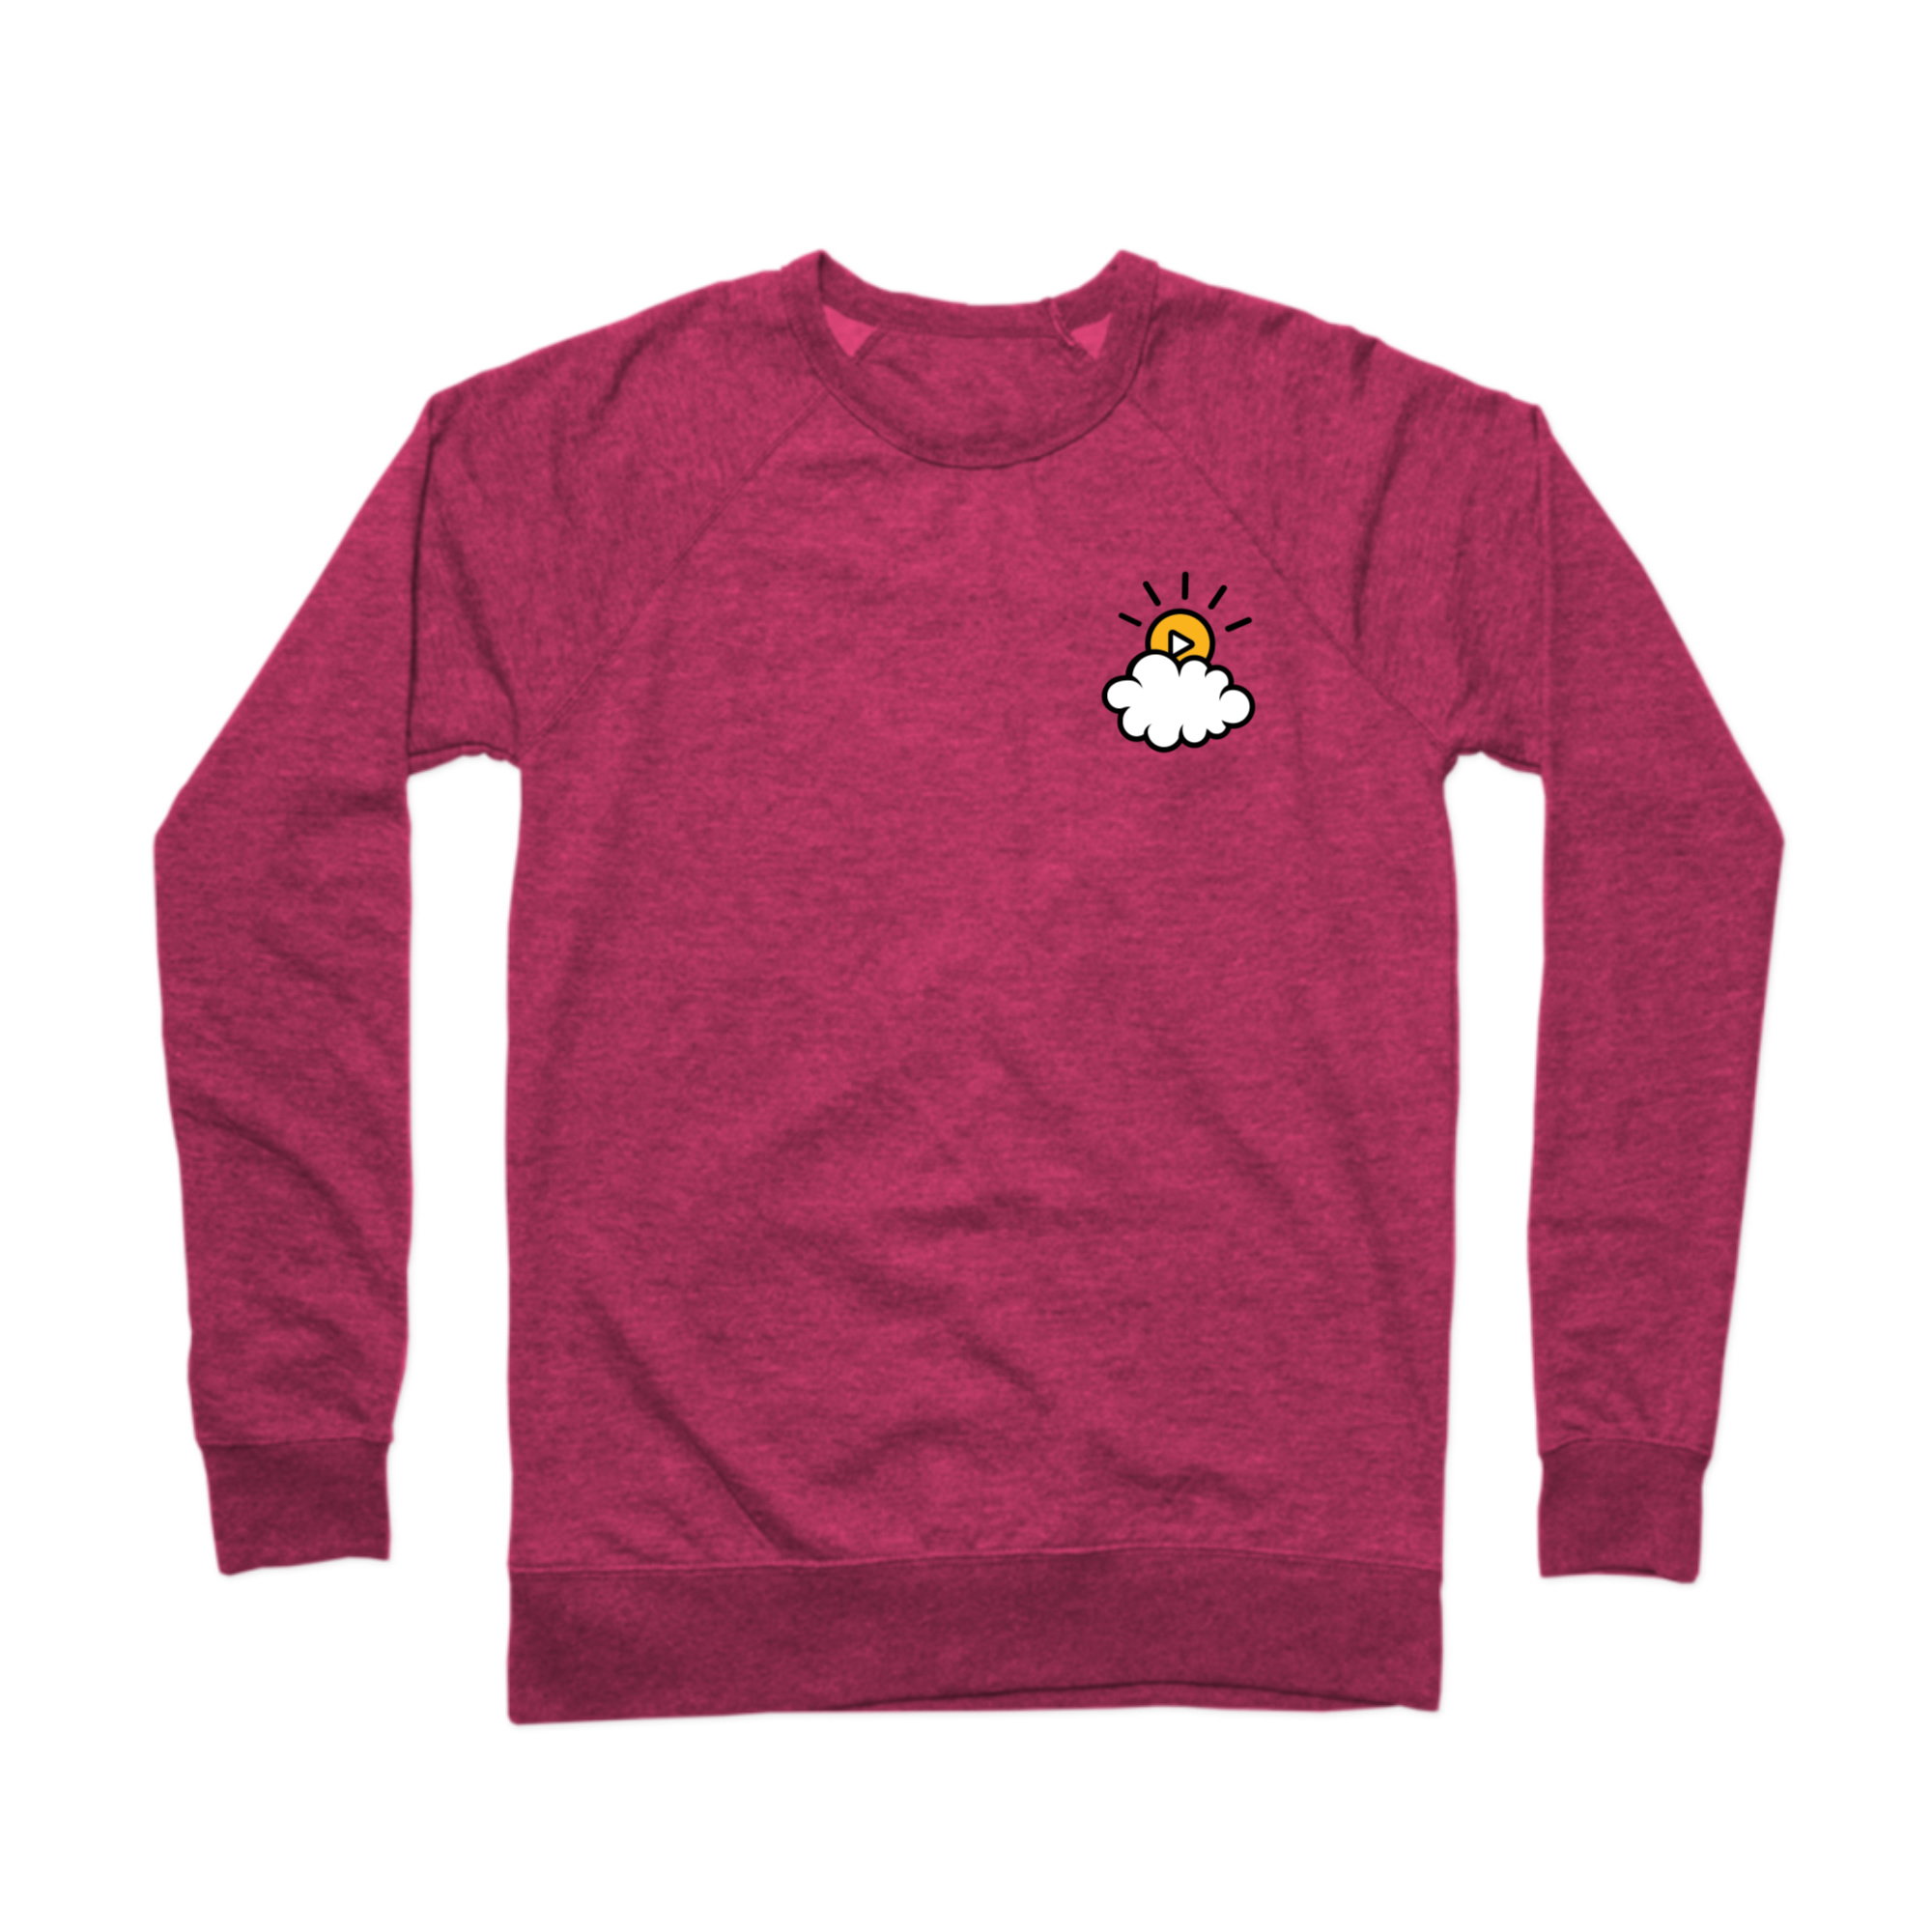 LittleThings Crewneck Sweatshirt